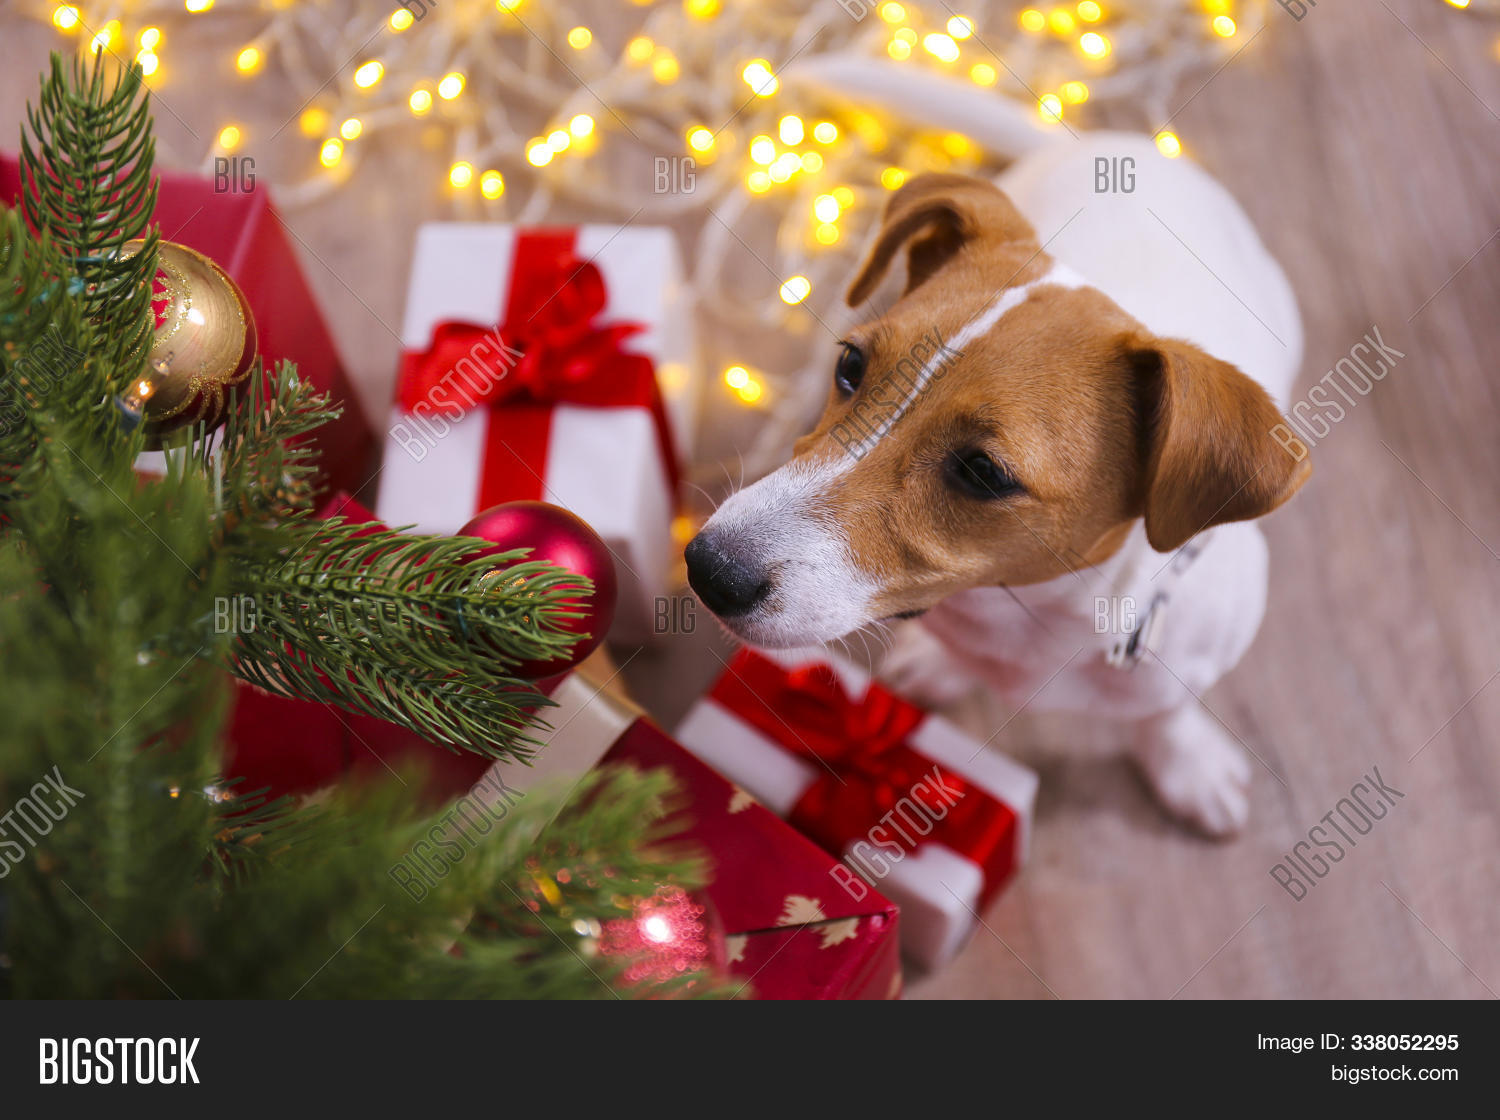 Adorable Pet Home Image Photo Free Trial Bigstock